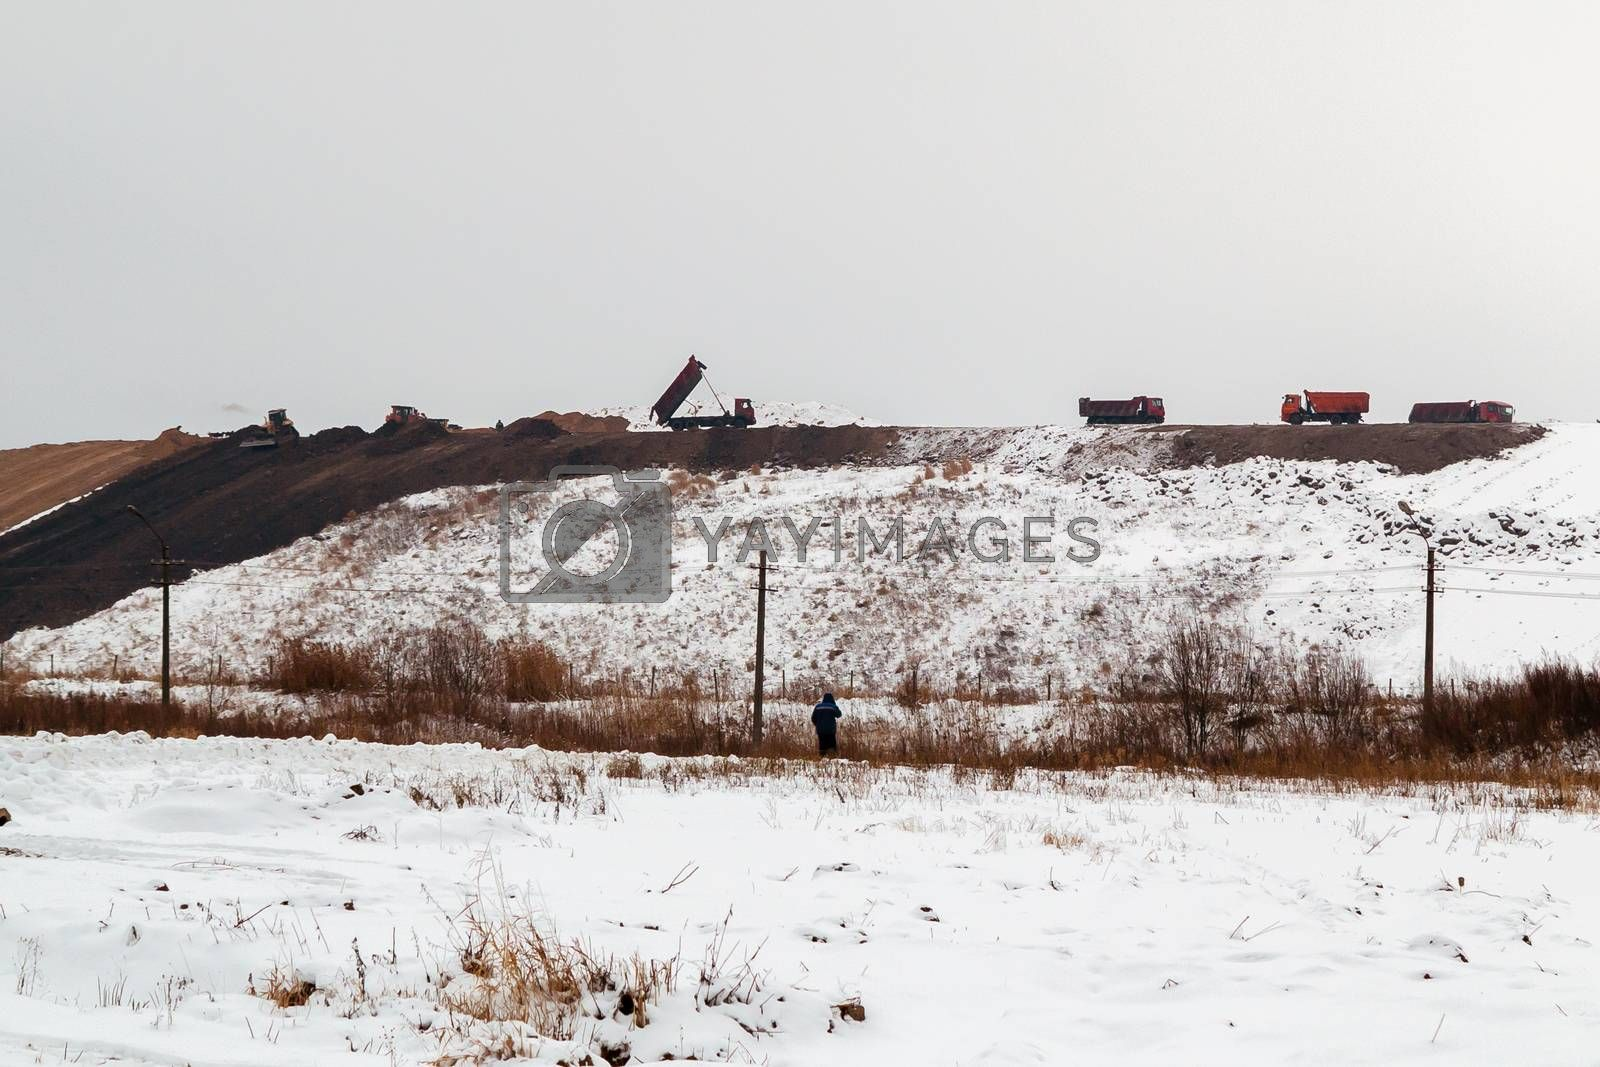 equipment works in the process of waste disposal and landfill reclamation by galsand